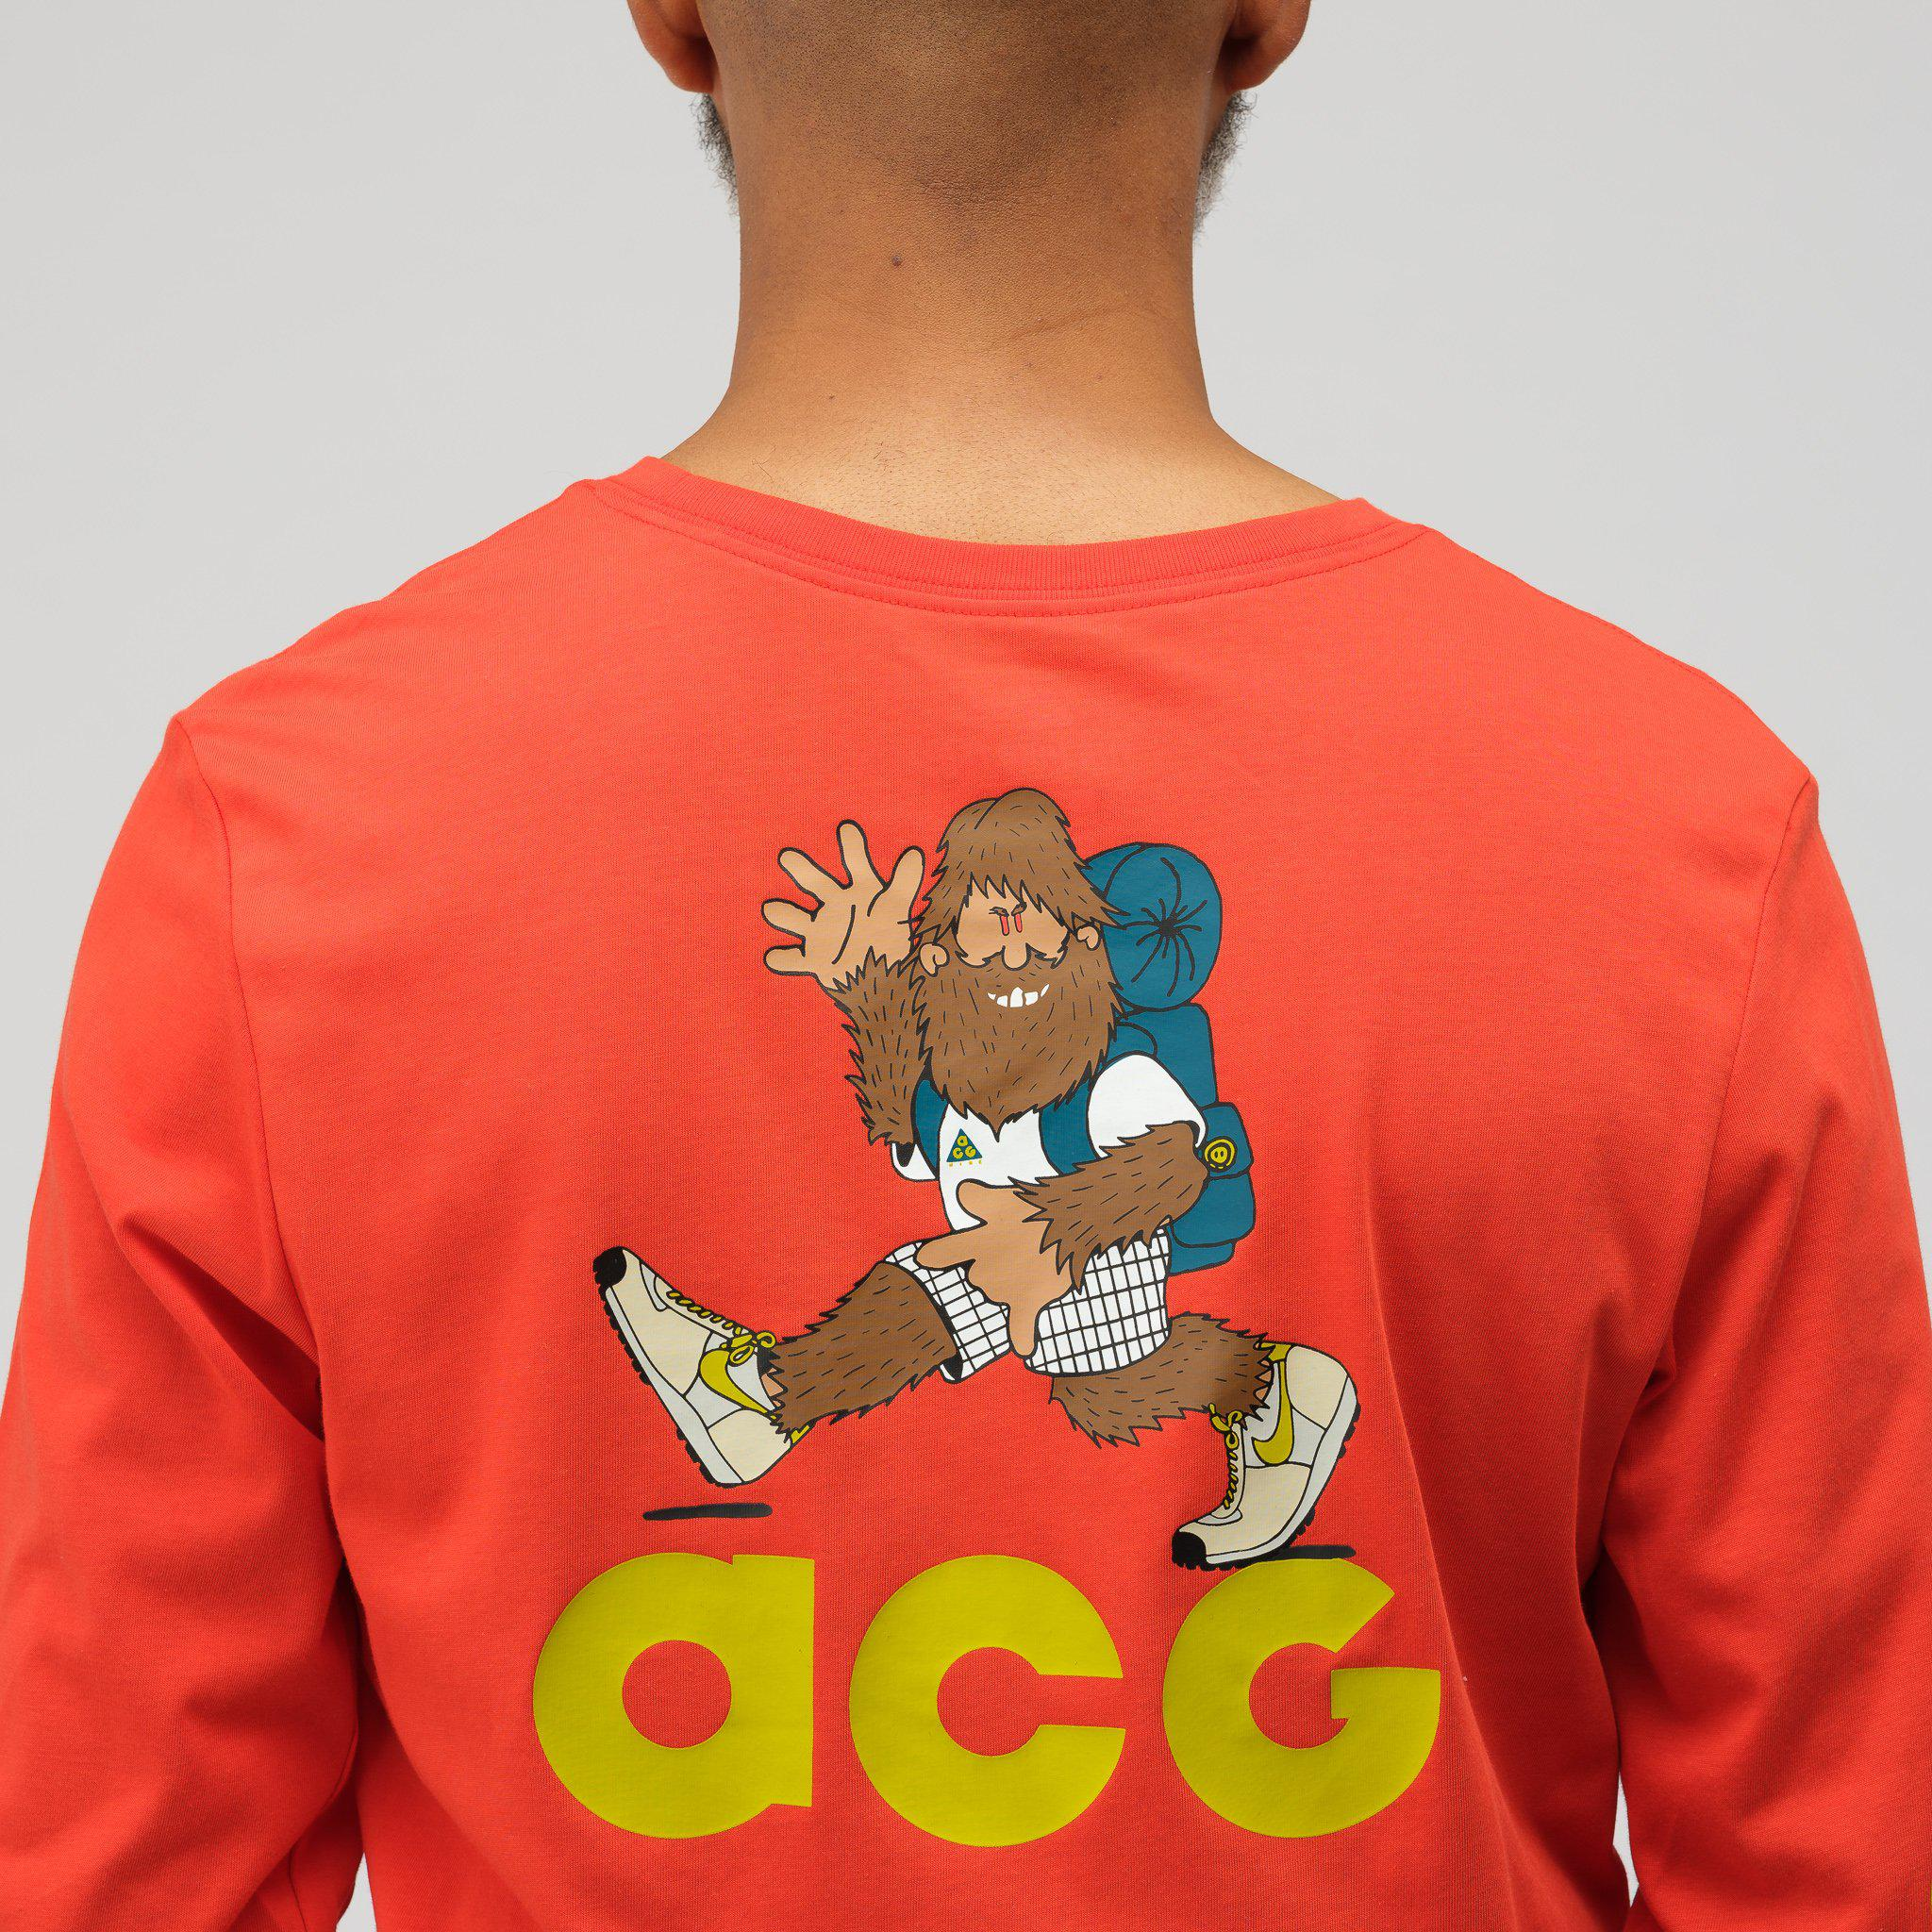 03556a73 Nike Acg Long Sleeve T-shirt In Habanero Red in Red for Men - Lyst